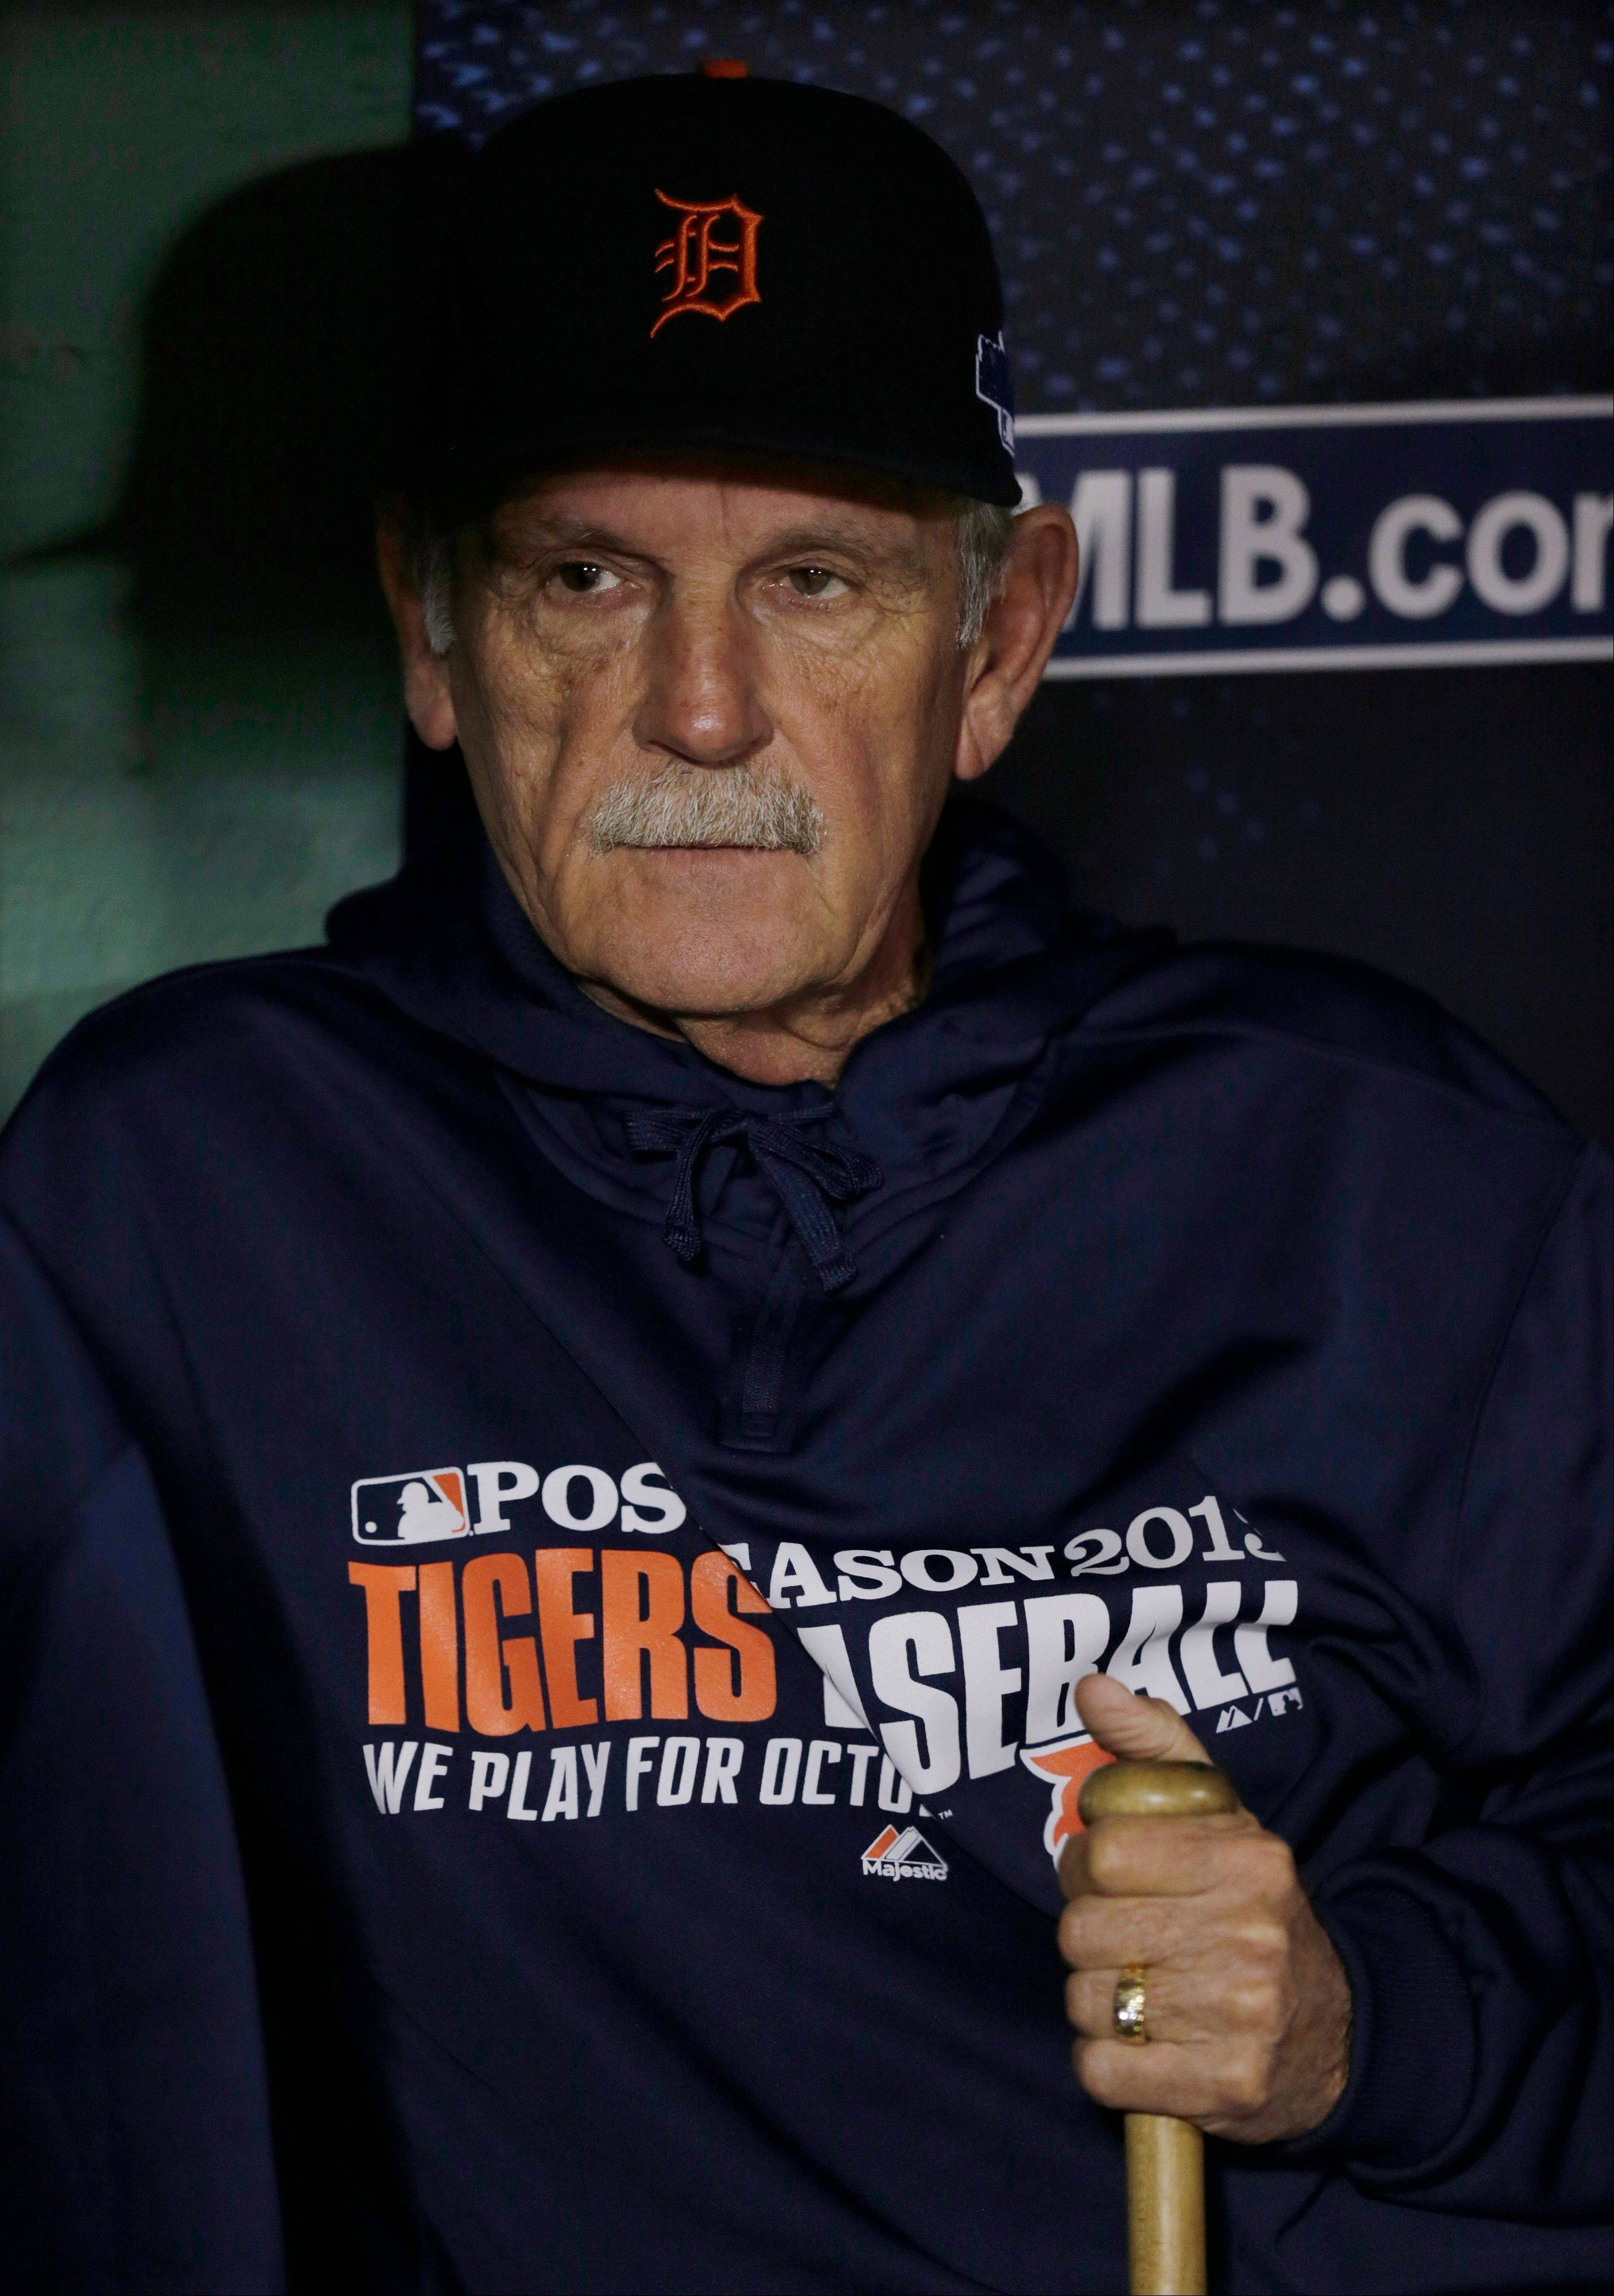 Detroit Tigers manager Jim Leyland watches batting practice from the dugout Saturday before Game 6 of the American League championship series. The 69-year-old manager announced his retirement Monday.